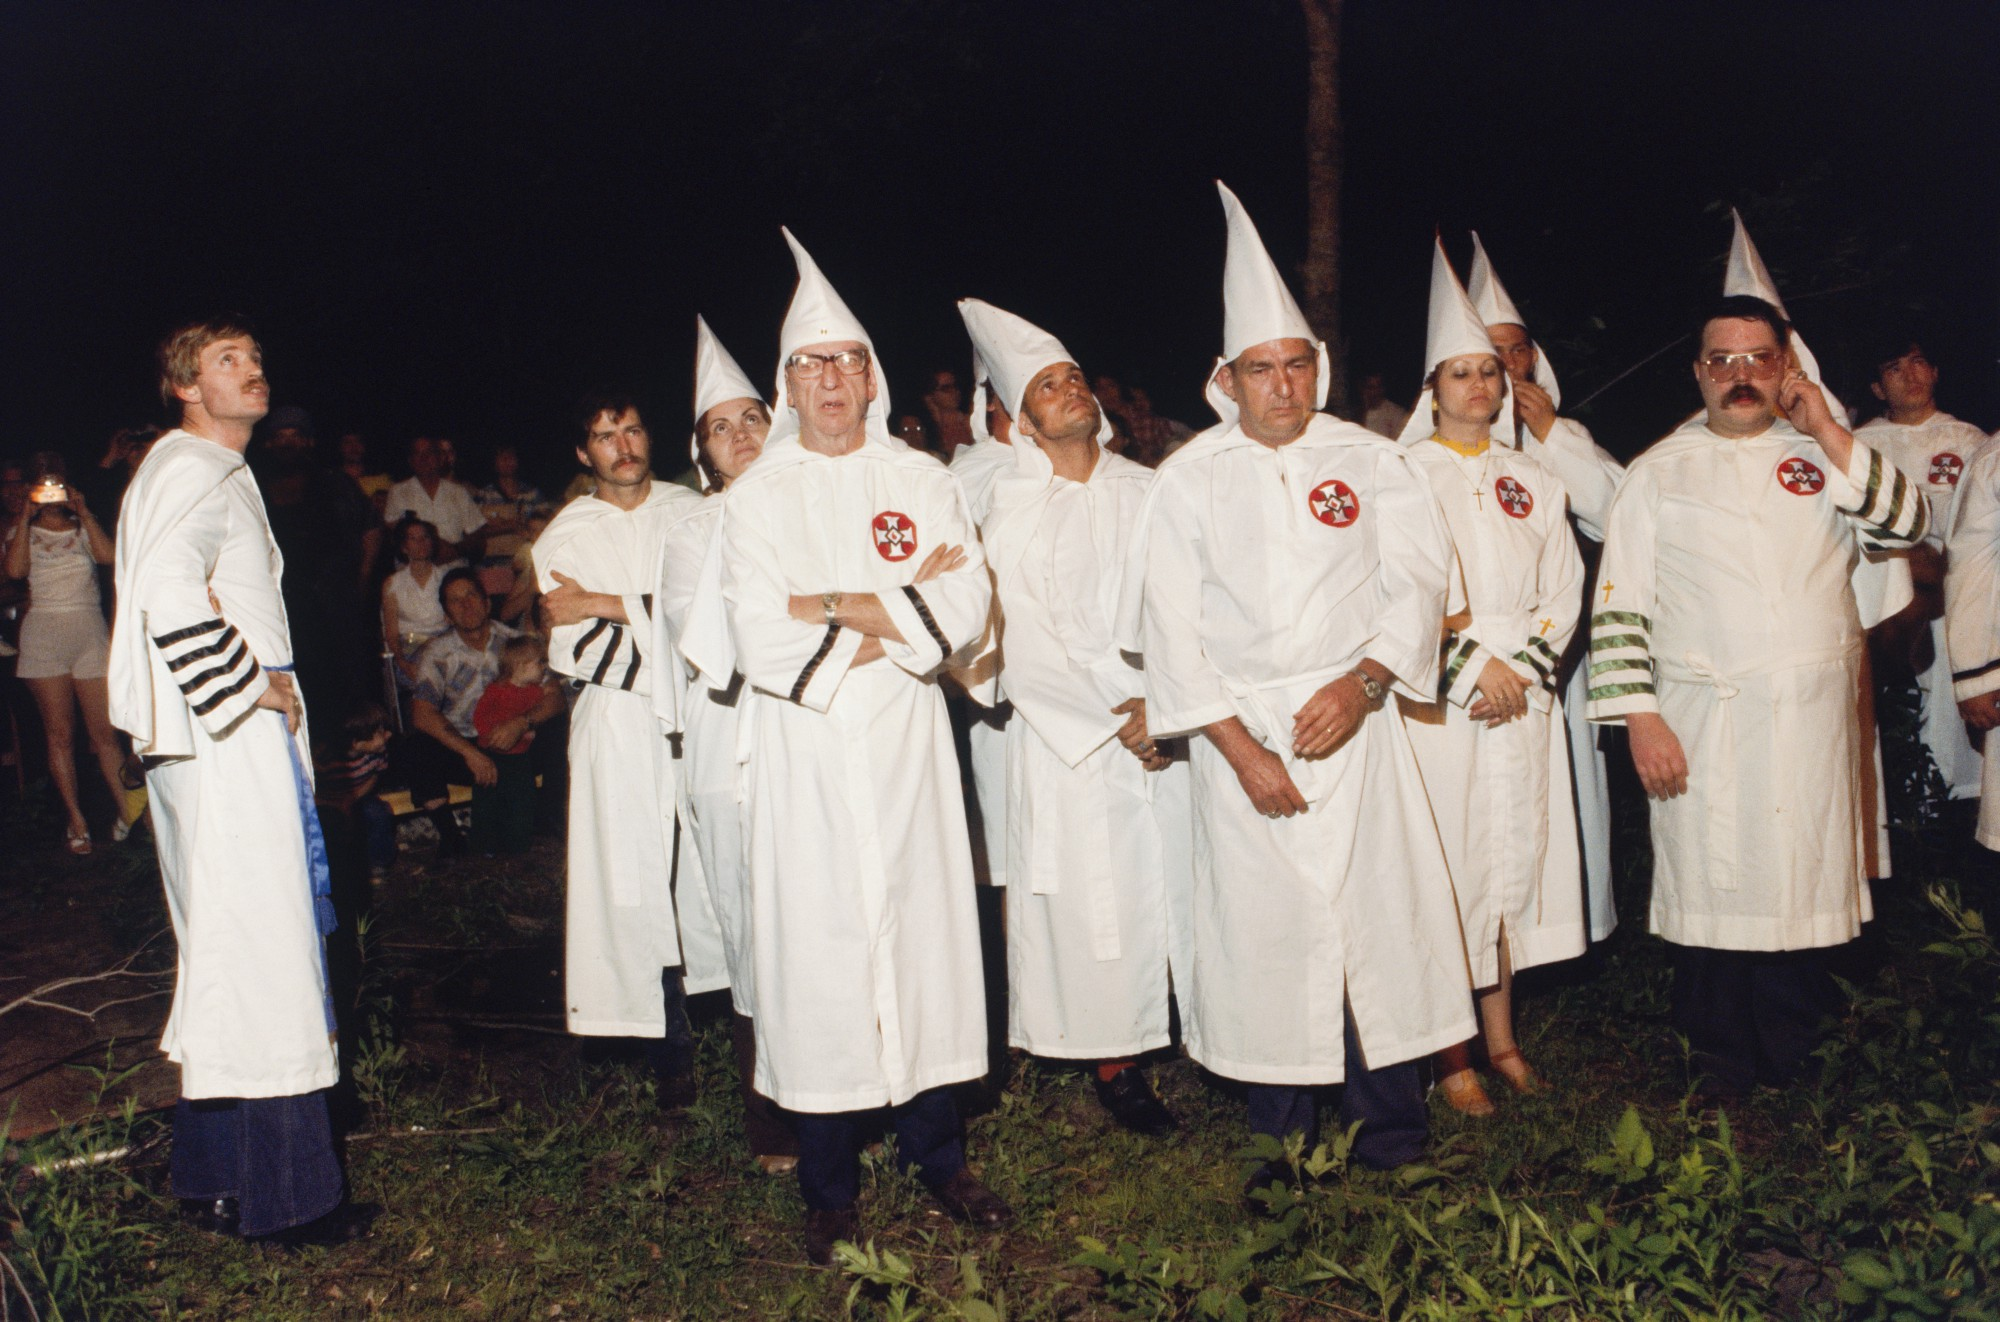 the ku klux klan of the The ku klux klan is an example of what part of culture subculture modern-day hipsters are an example of: cultural lag  soc 101 chapter 3 59 terms intro to sociology - chapter 3 review 56 terms week 3 - openstax chapter 3 - culture 64 terms soc 1113 ch 3 other sets by this creator.